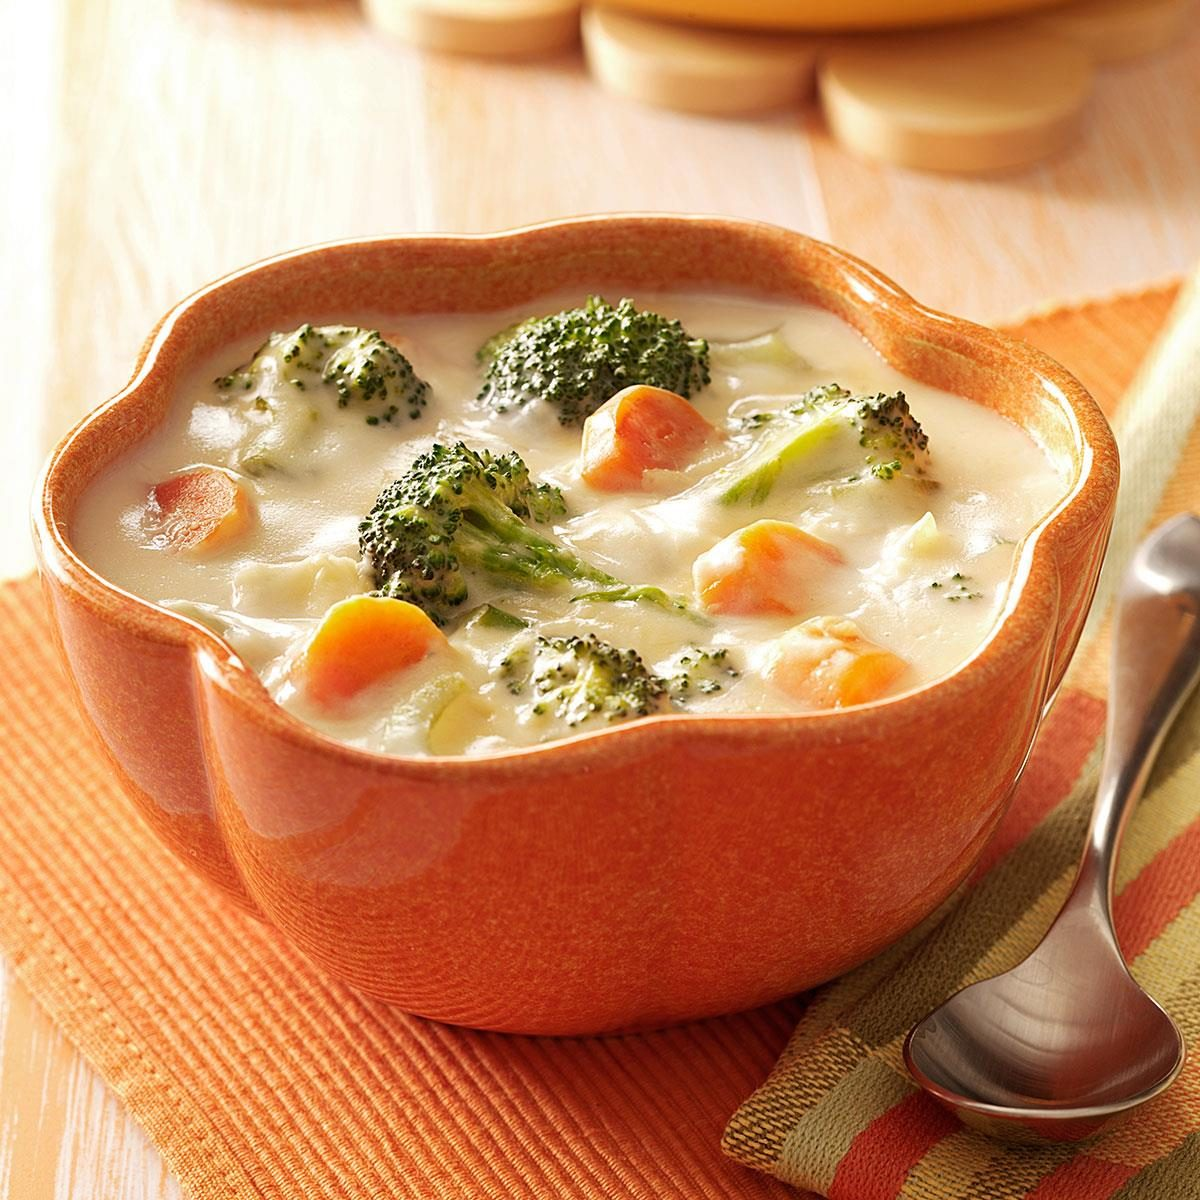 Broccoli And Cheese Soup From The Test Kitchen